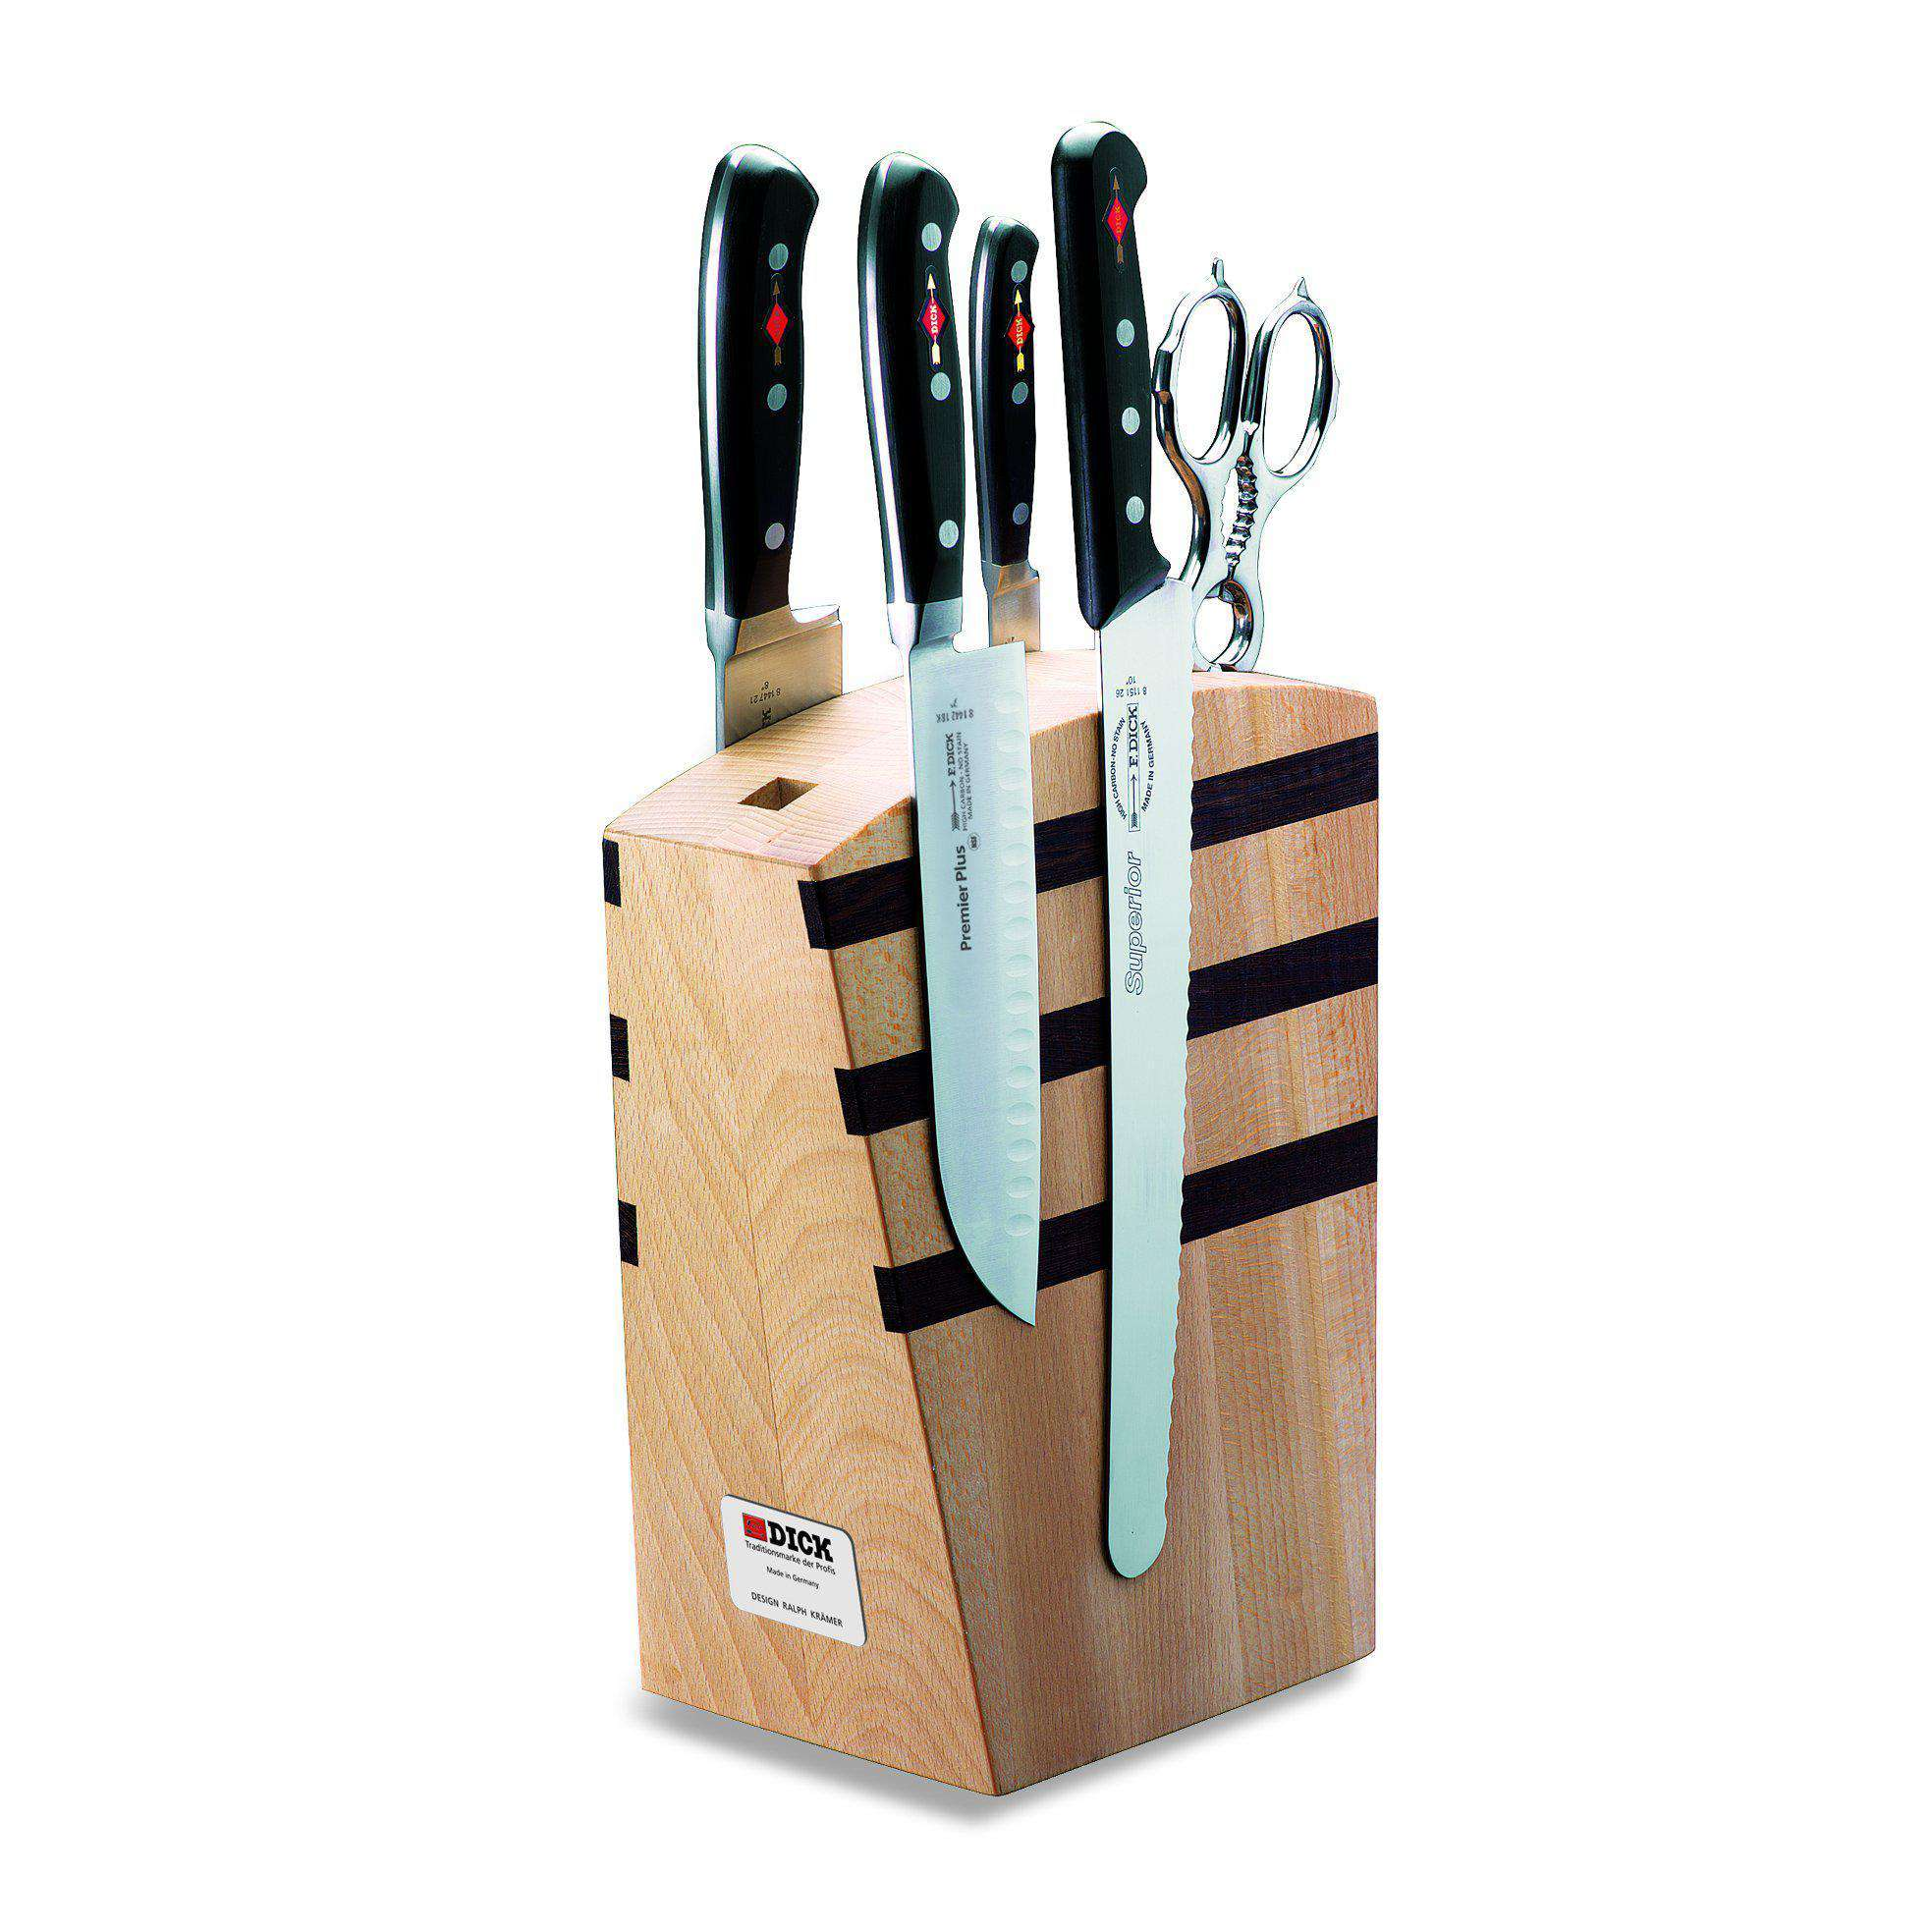 F Dick Premier Plus Magnetic Wooden Knife Block 5 Pc Set - House of Knives